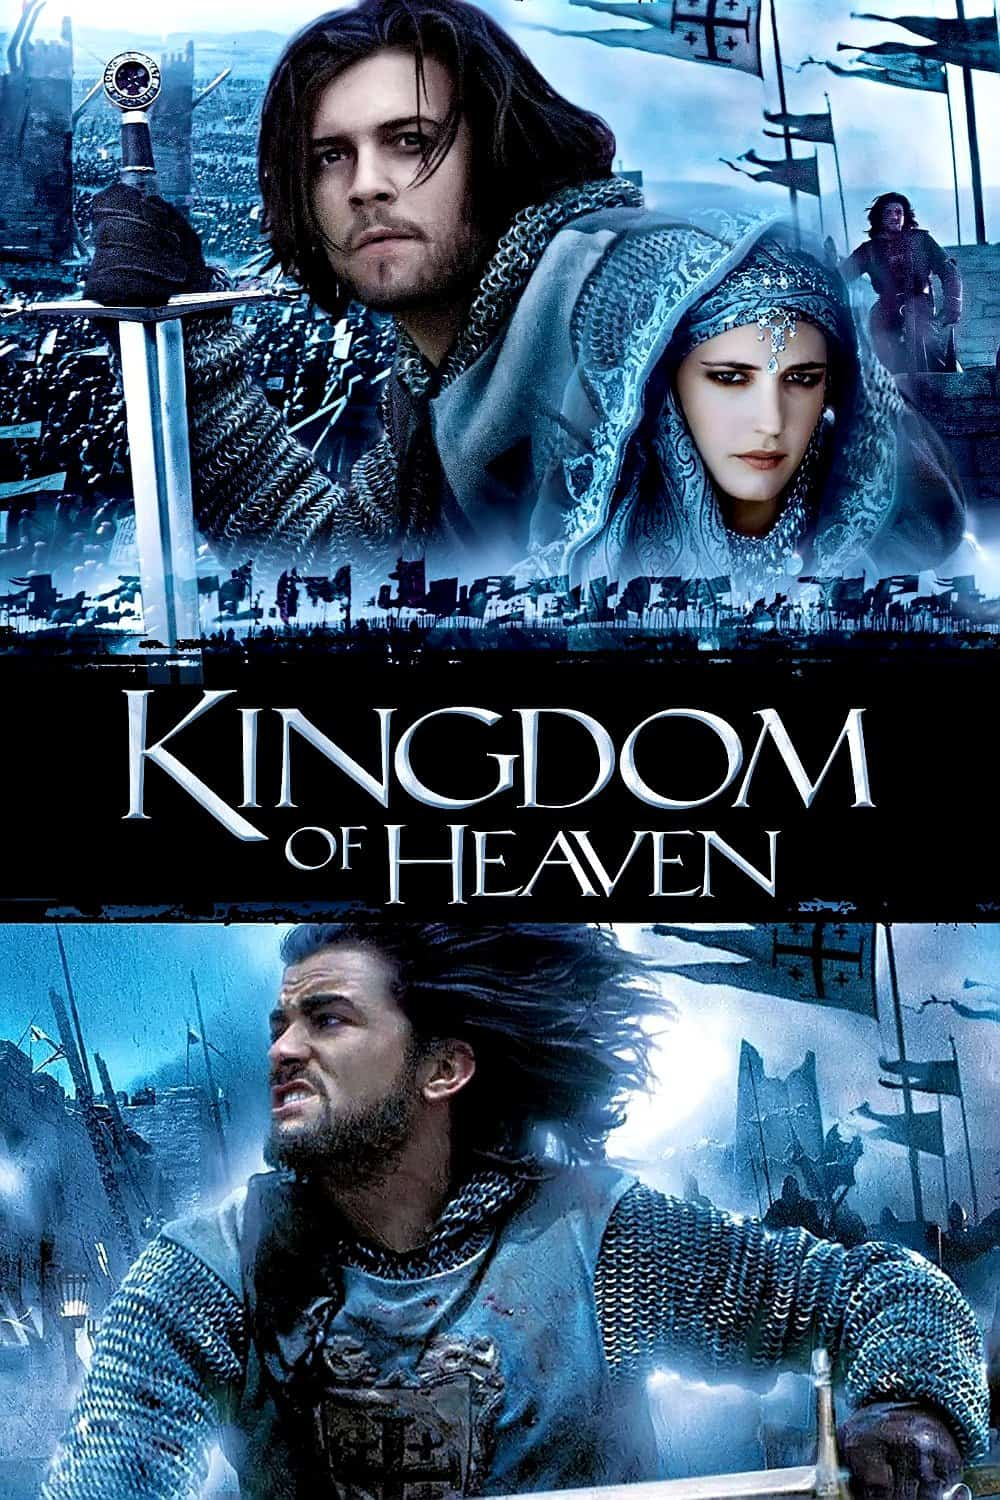 Kingdom of Heaven, 2005